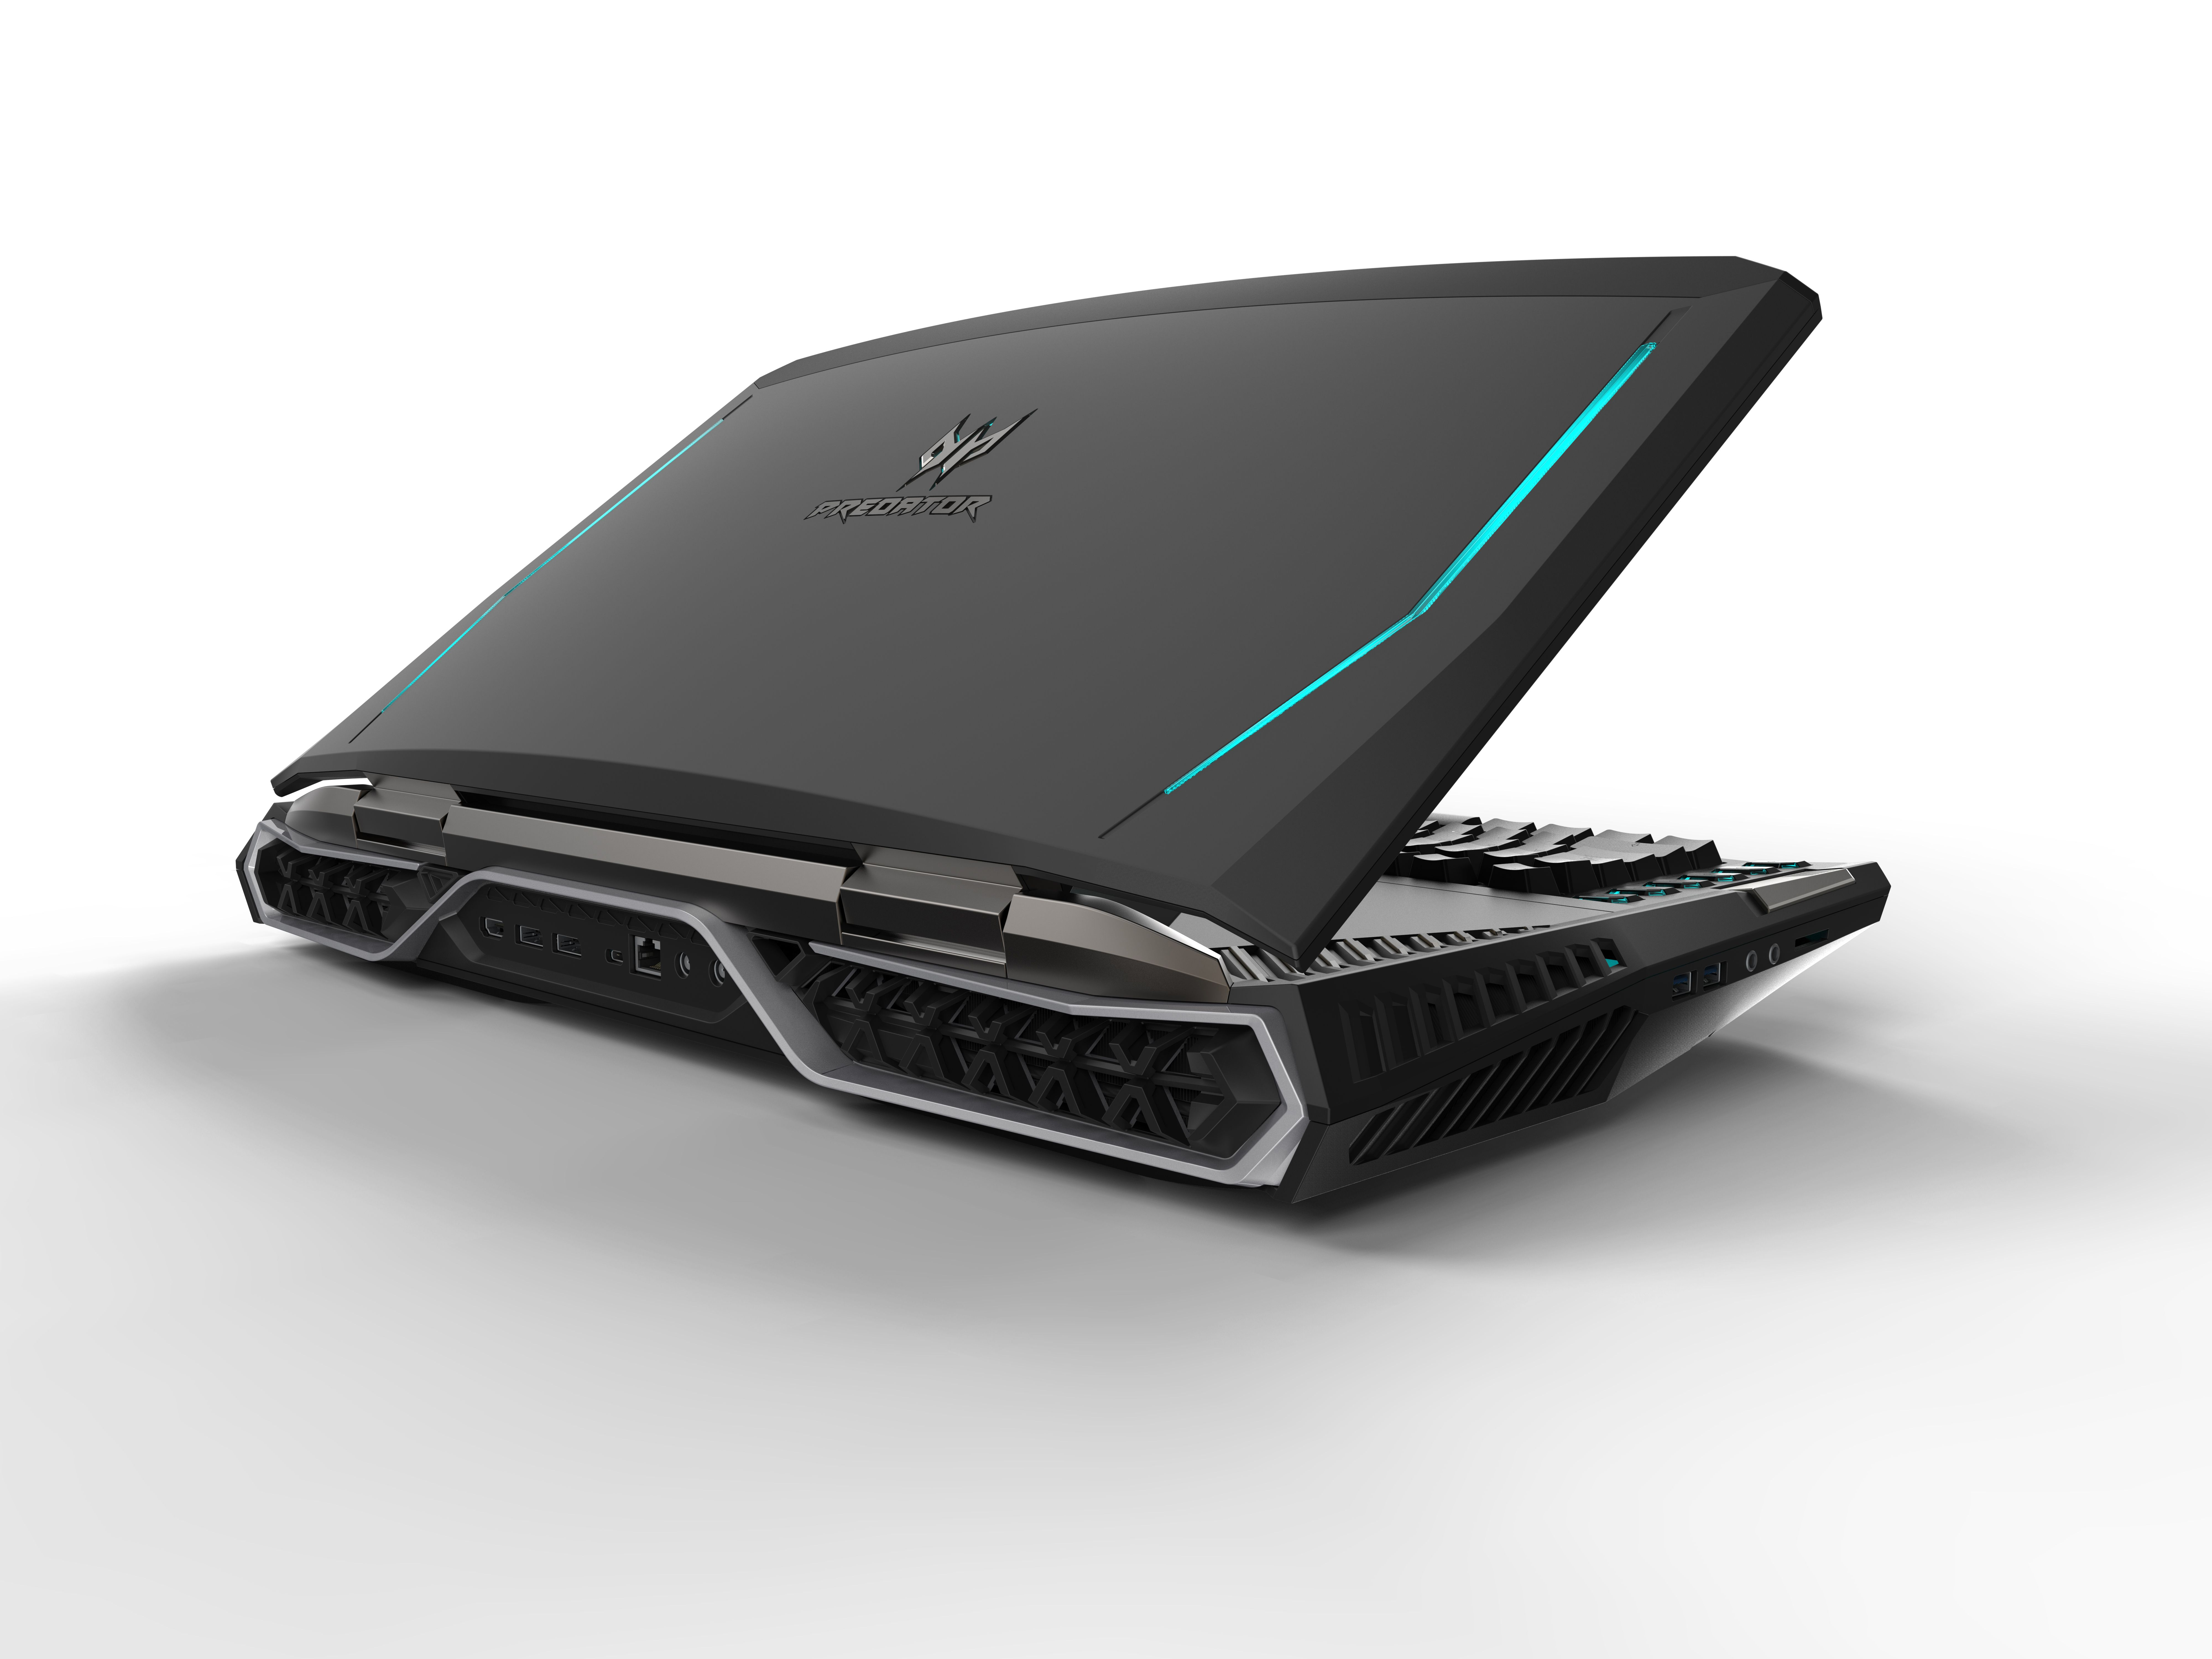 Acer S New Gaming Laptop Stretches The Definition Of Portability